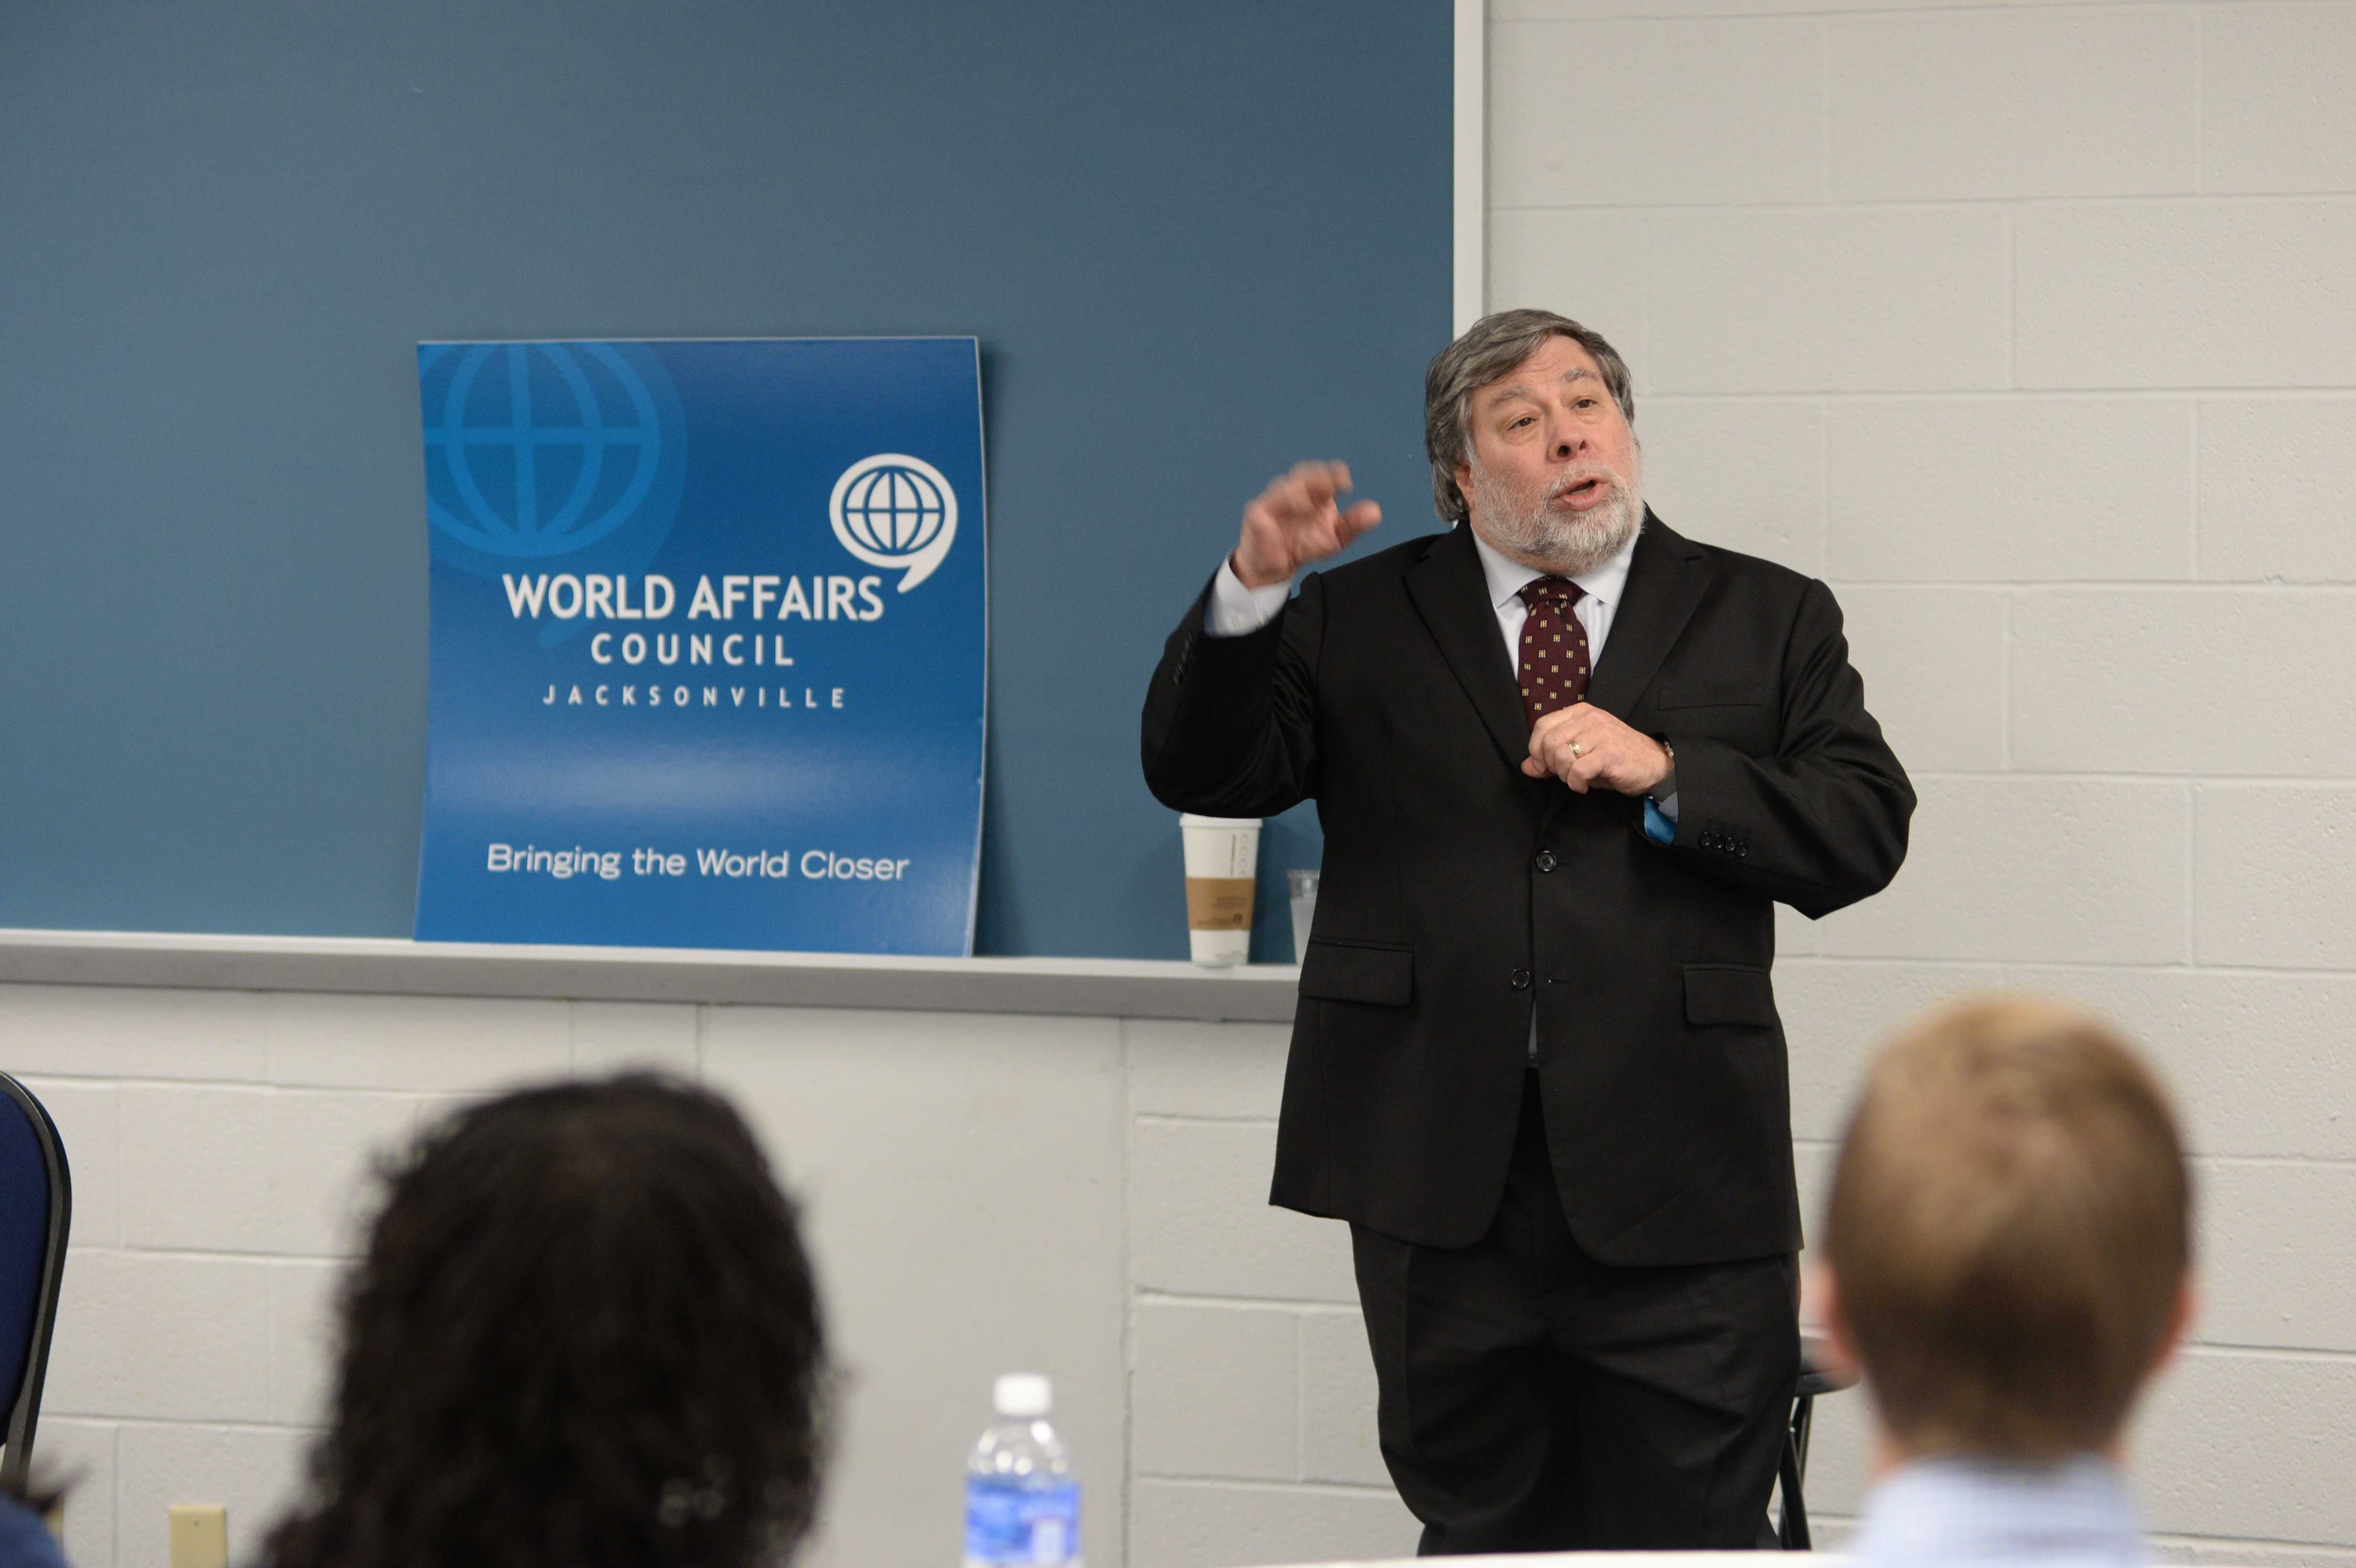 Wozniak: The unsung hero, the other half of the Apple pioneers, and self-proclaimed prankster